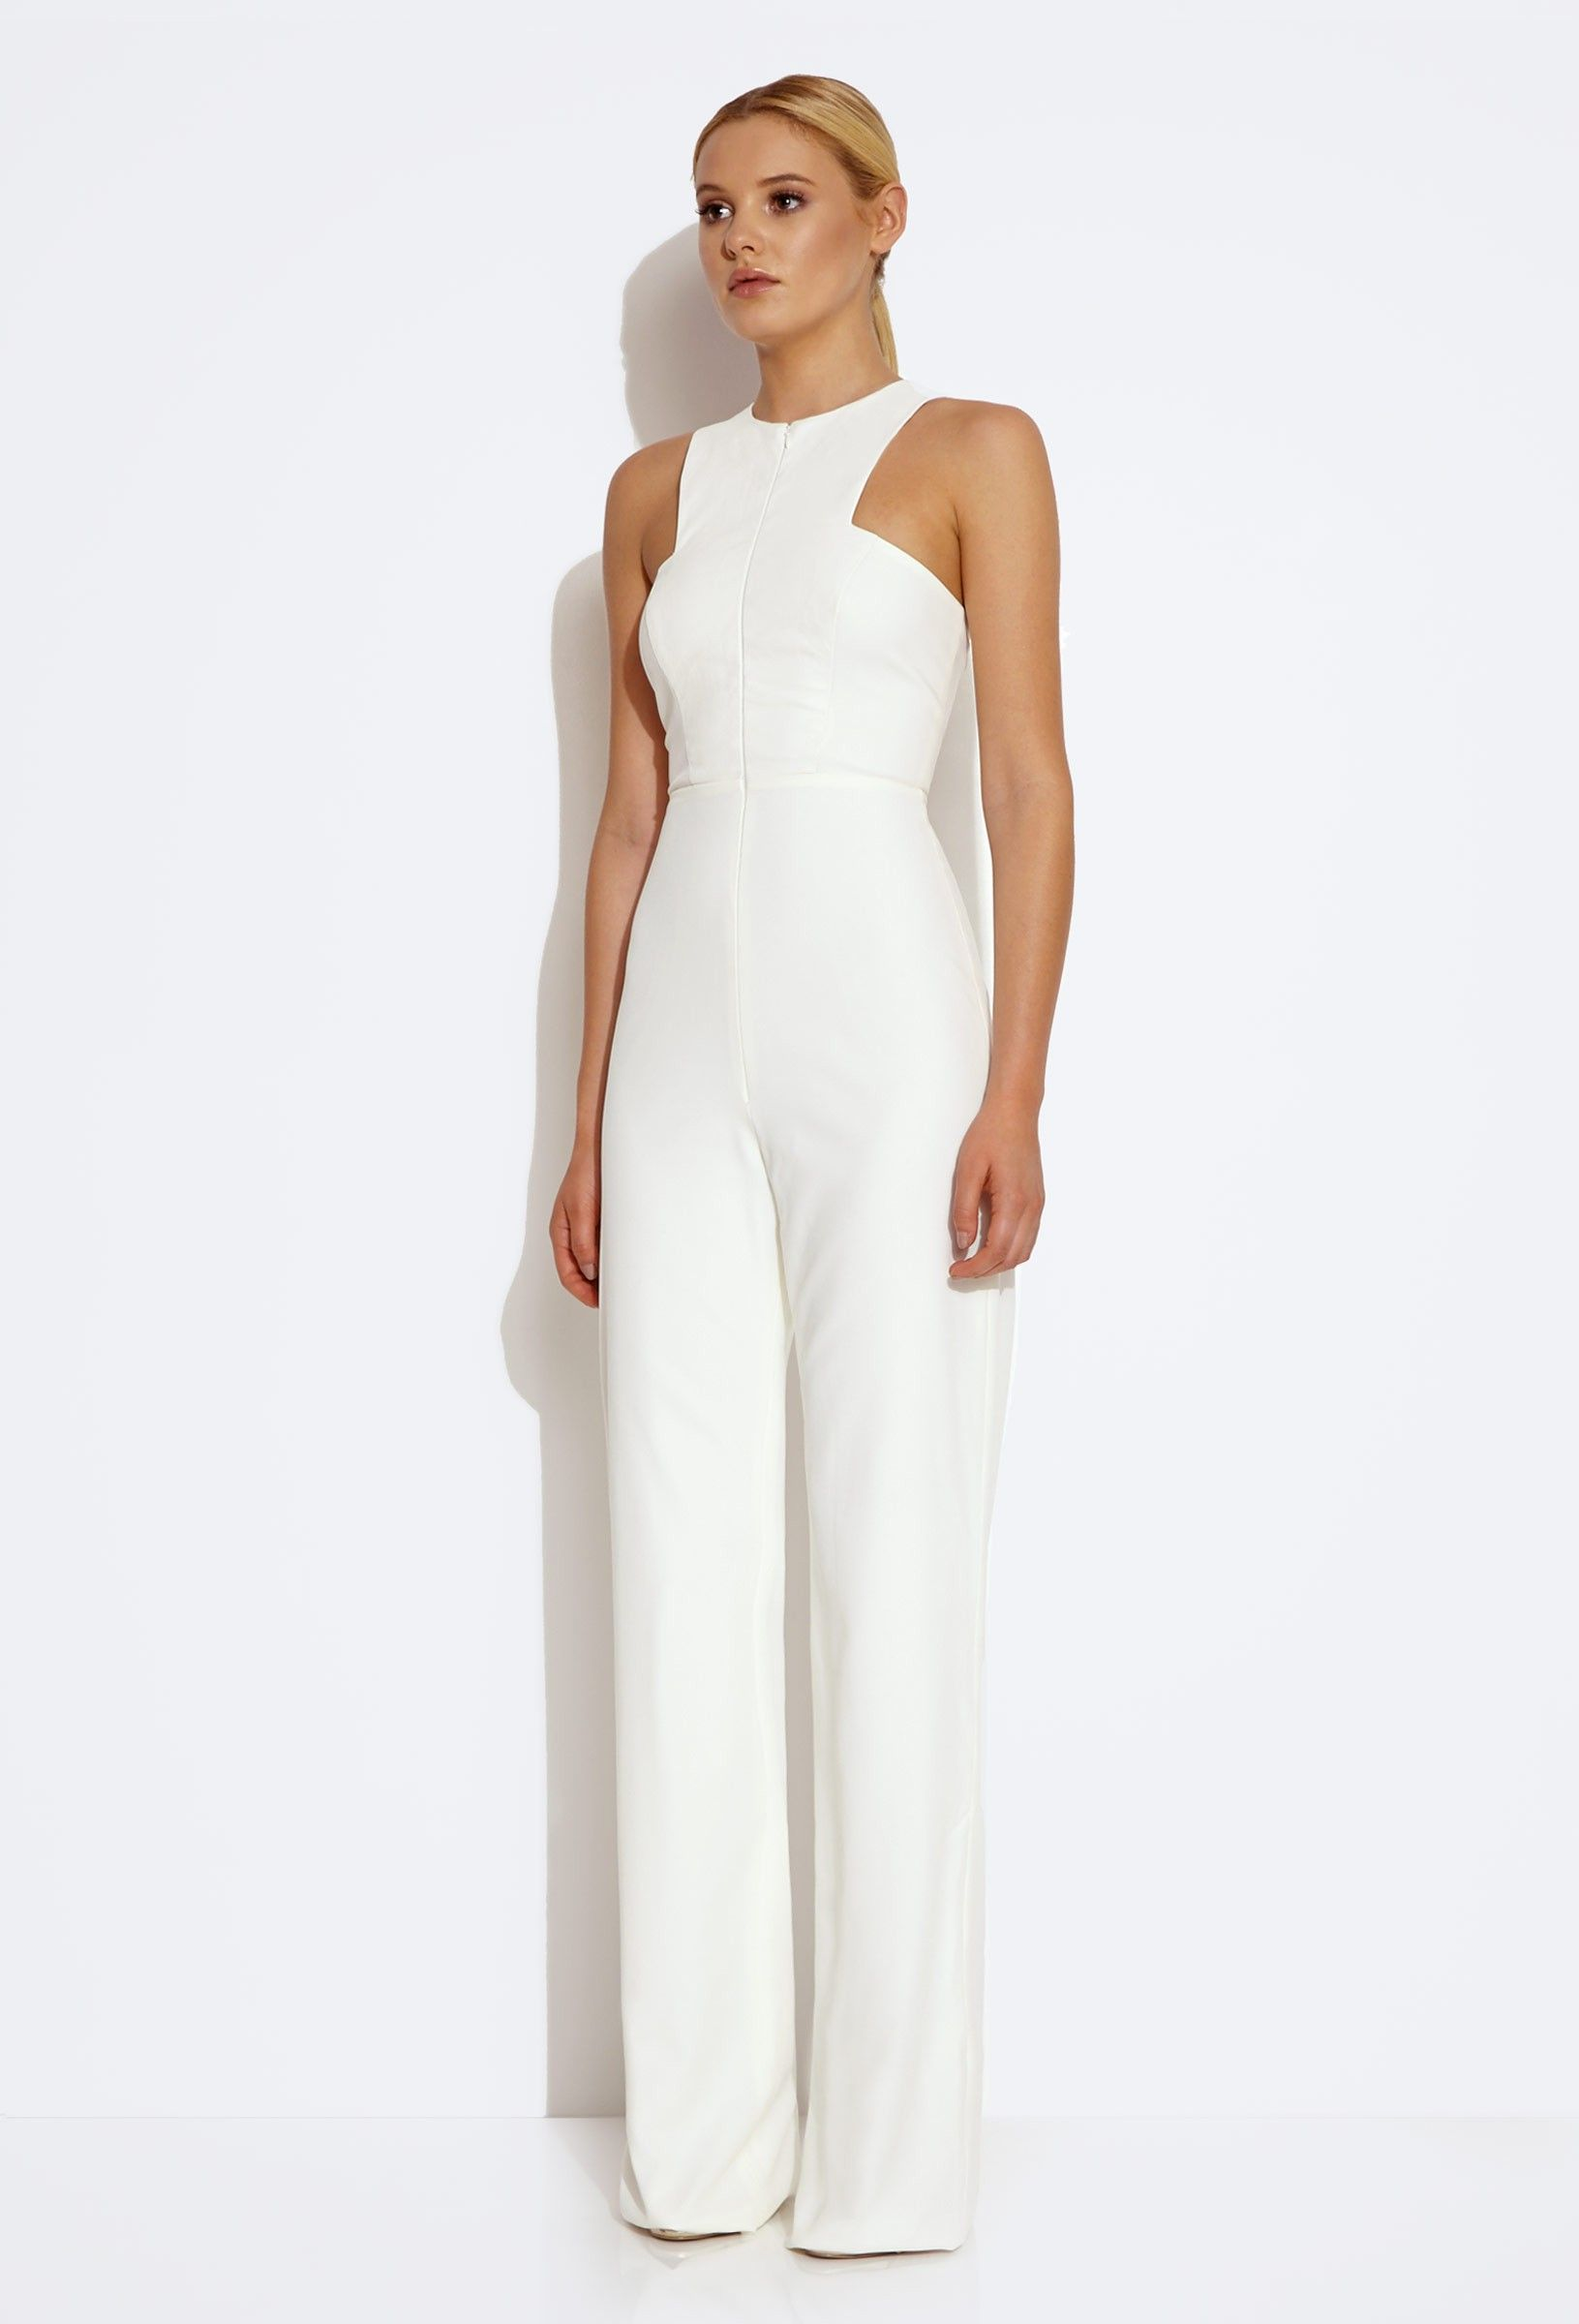 AQ/AQ | Jumpsuits | Shop women's jumpsuits, trouser suits More